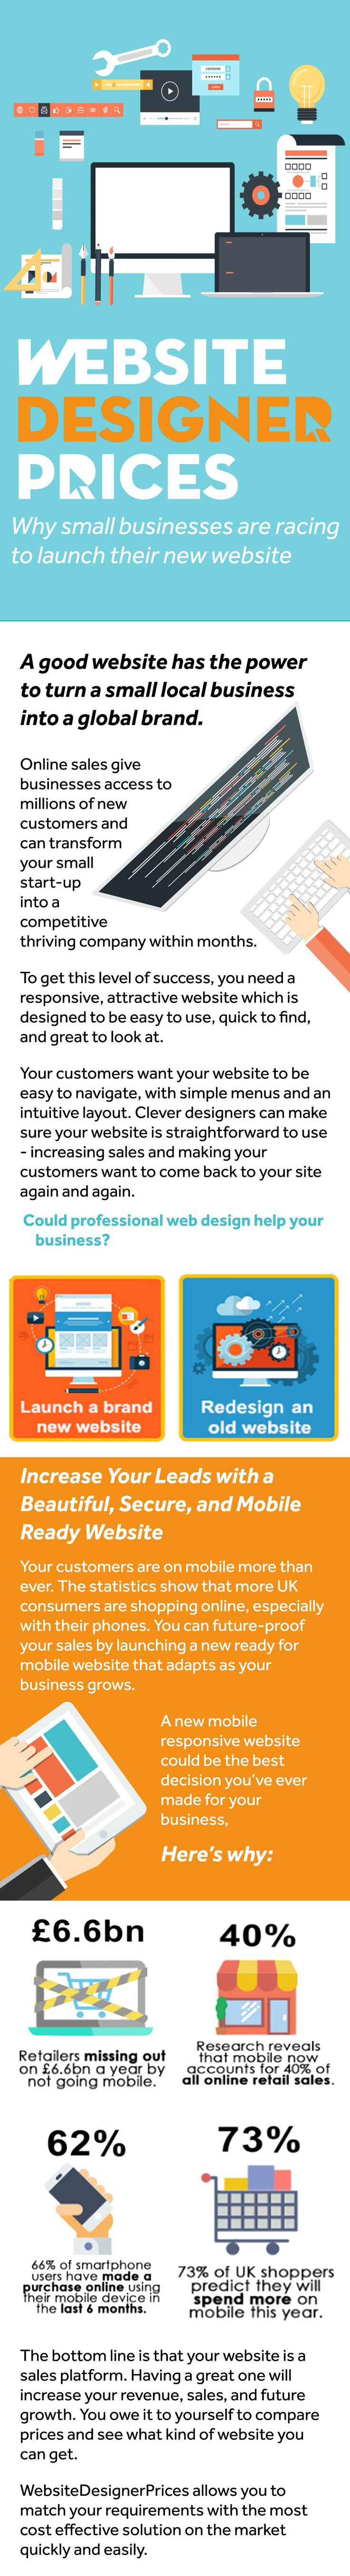 Need a professional website for your business in 2017? Compare Website Designer prices and save up to 75%! Hiring expert web designers has never been so easy. Compare web design companies & find the most suitable offering for your business! All you need to do is enter your name postcode and email address, and we'll find the best offers for you completely free.